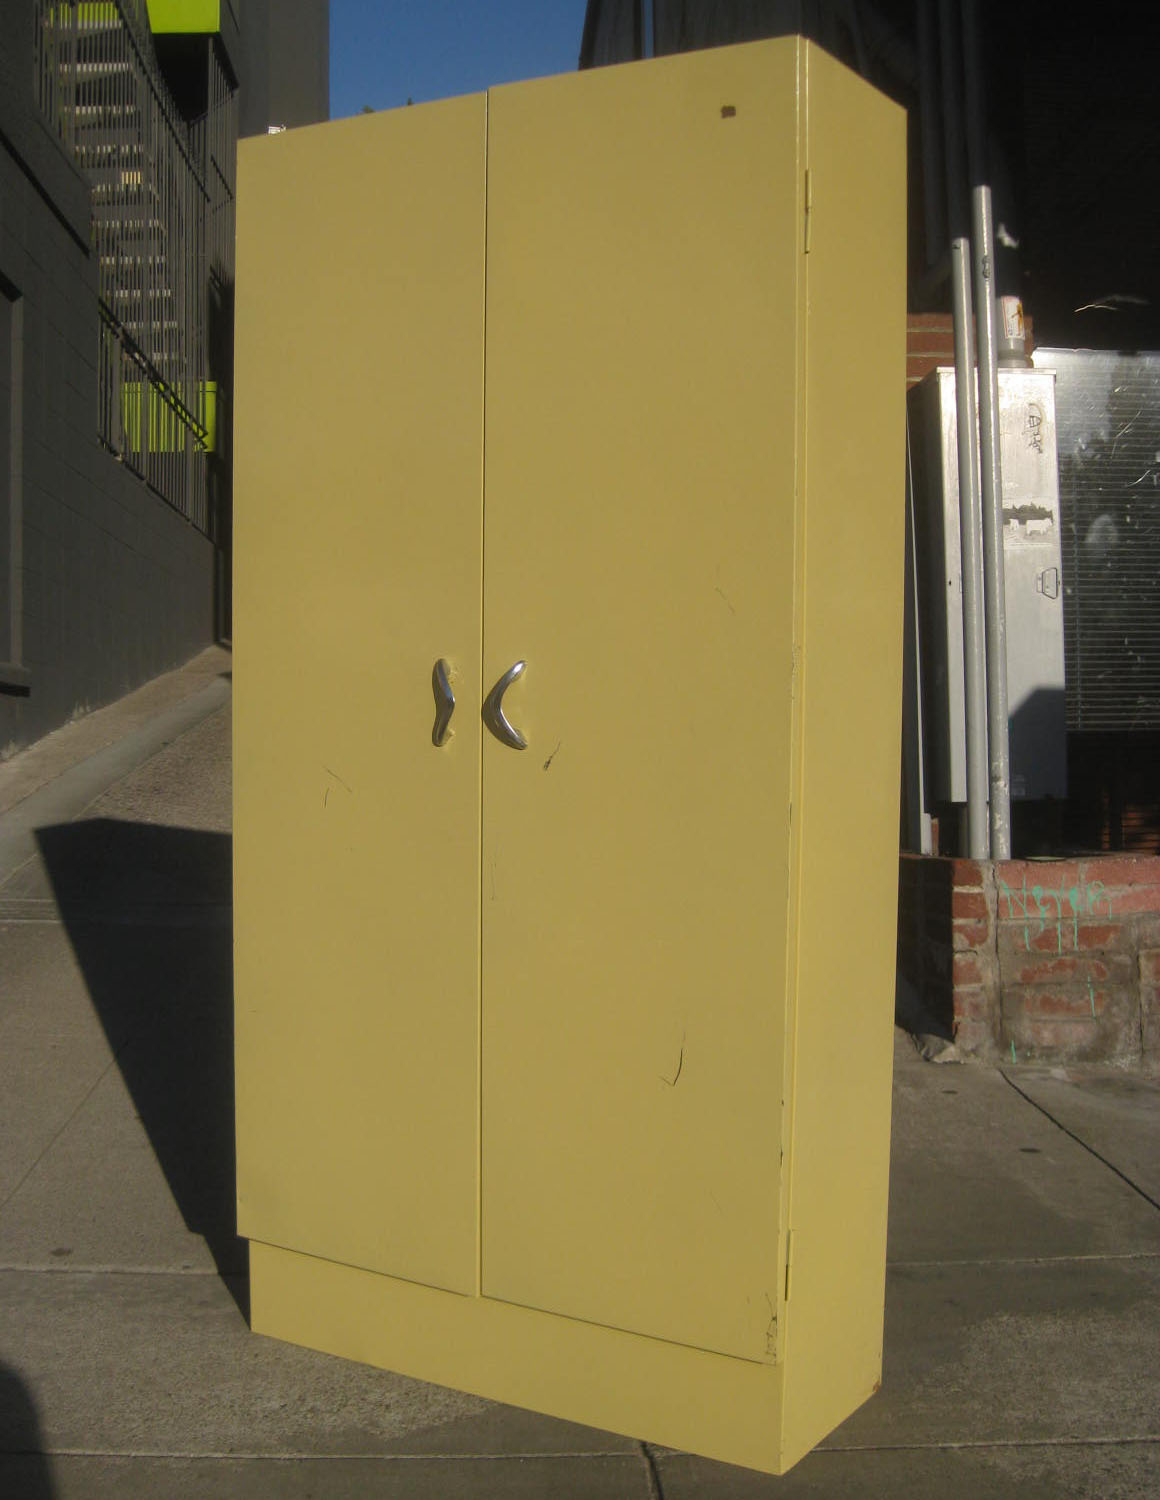 SOLD - Vintage Metal Storage Cabinet - $50 - UHURU FURNITURE & COLLECTIBLES: SOLD - Vintage Metal Storage Cabinet